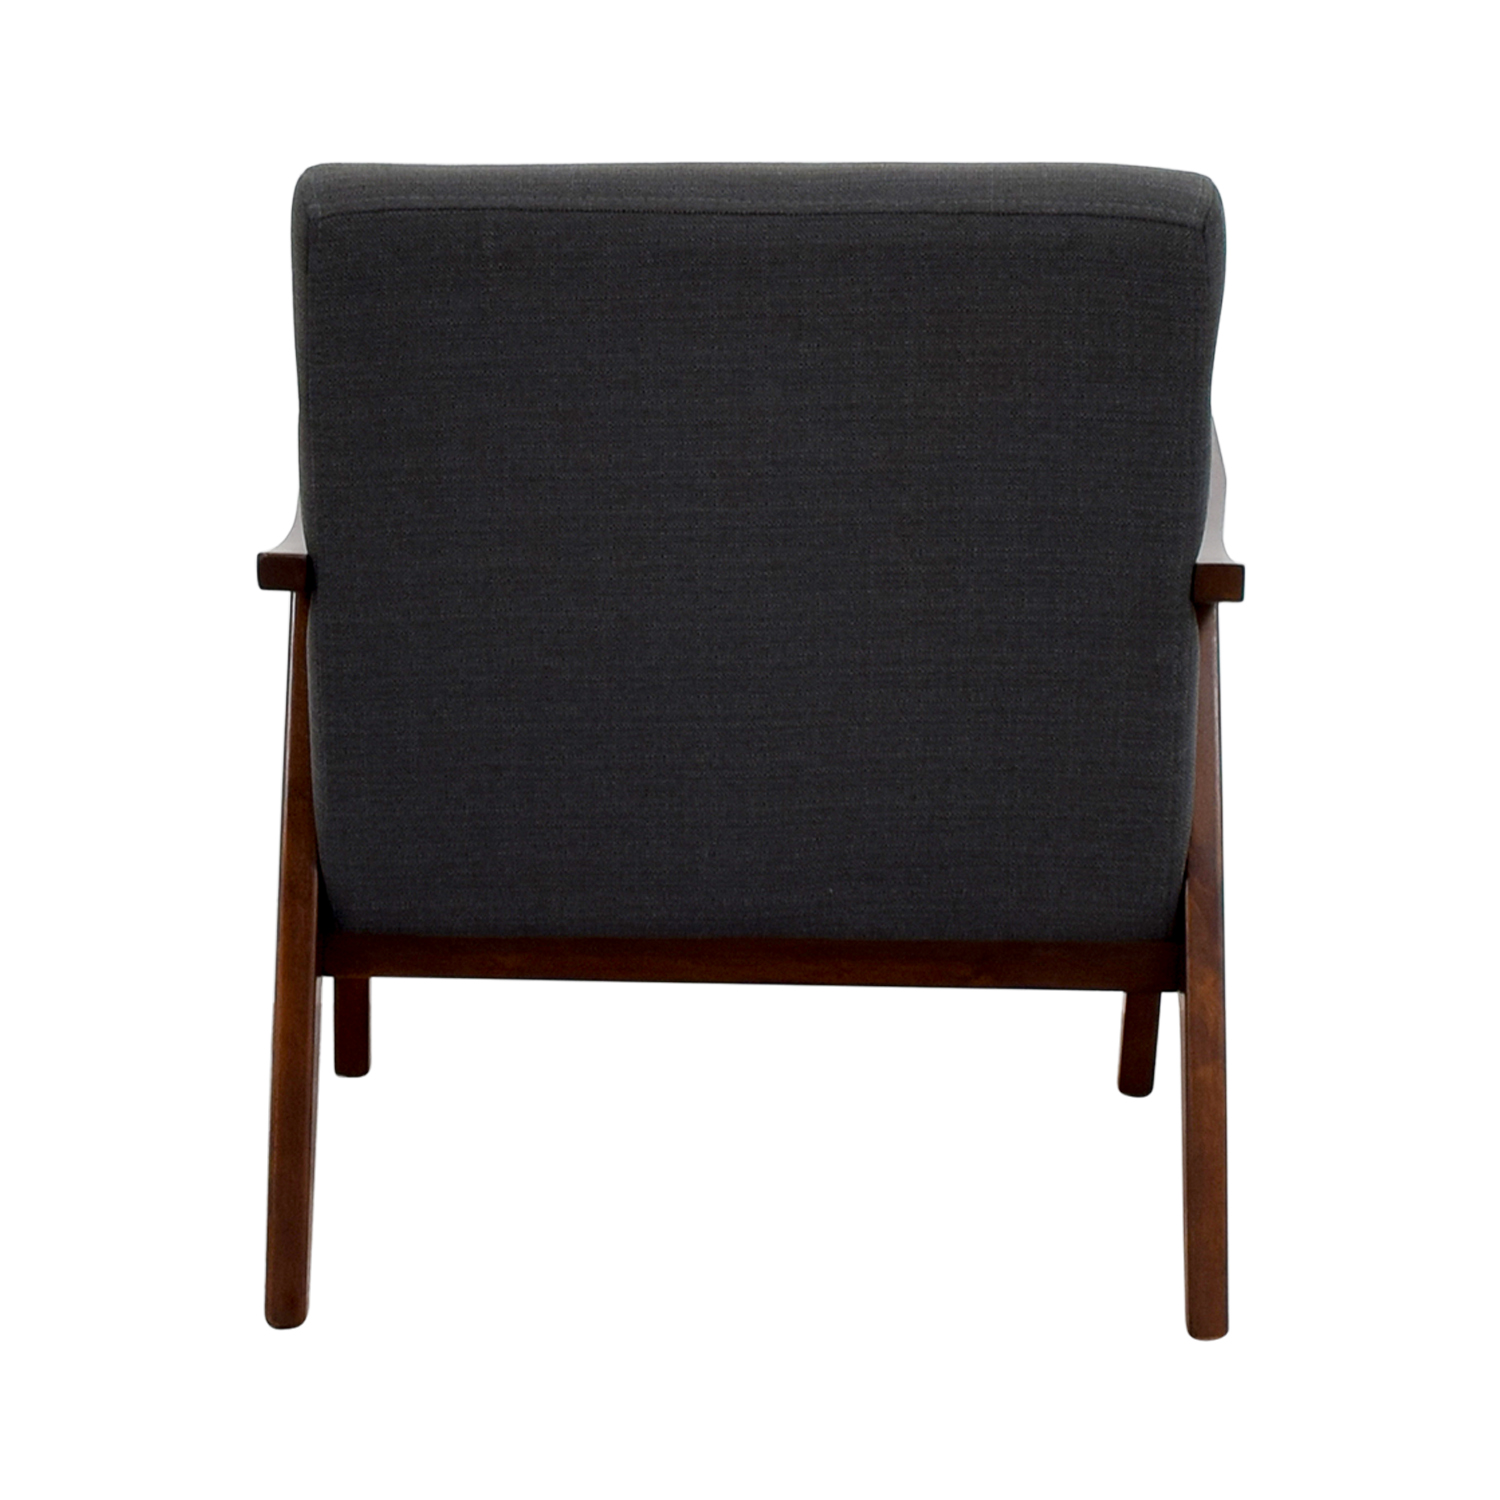 Coral Springs Coral Springs Dark Gray Side Chair second hand